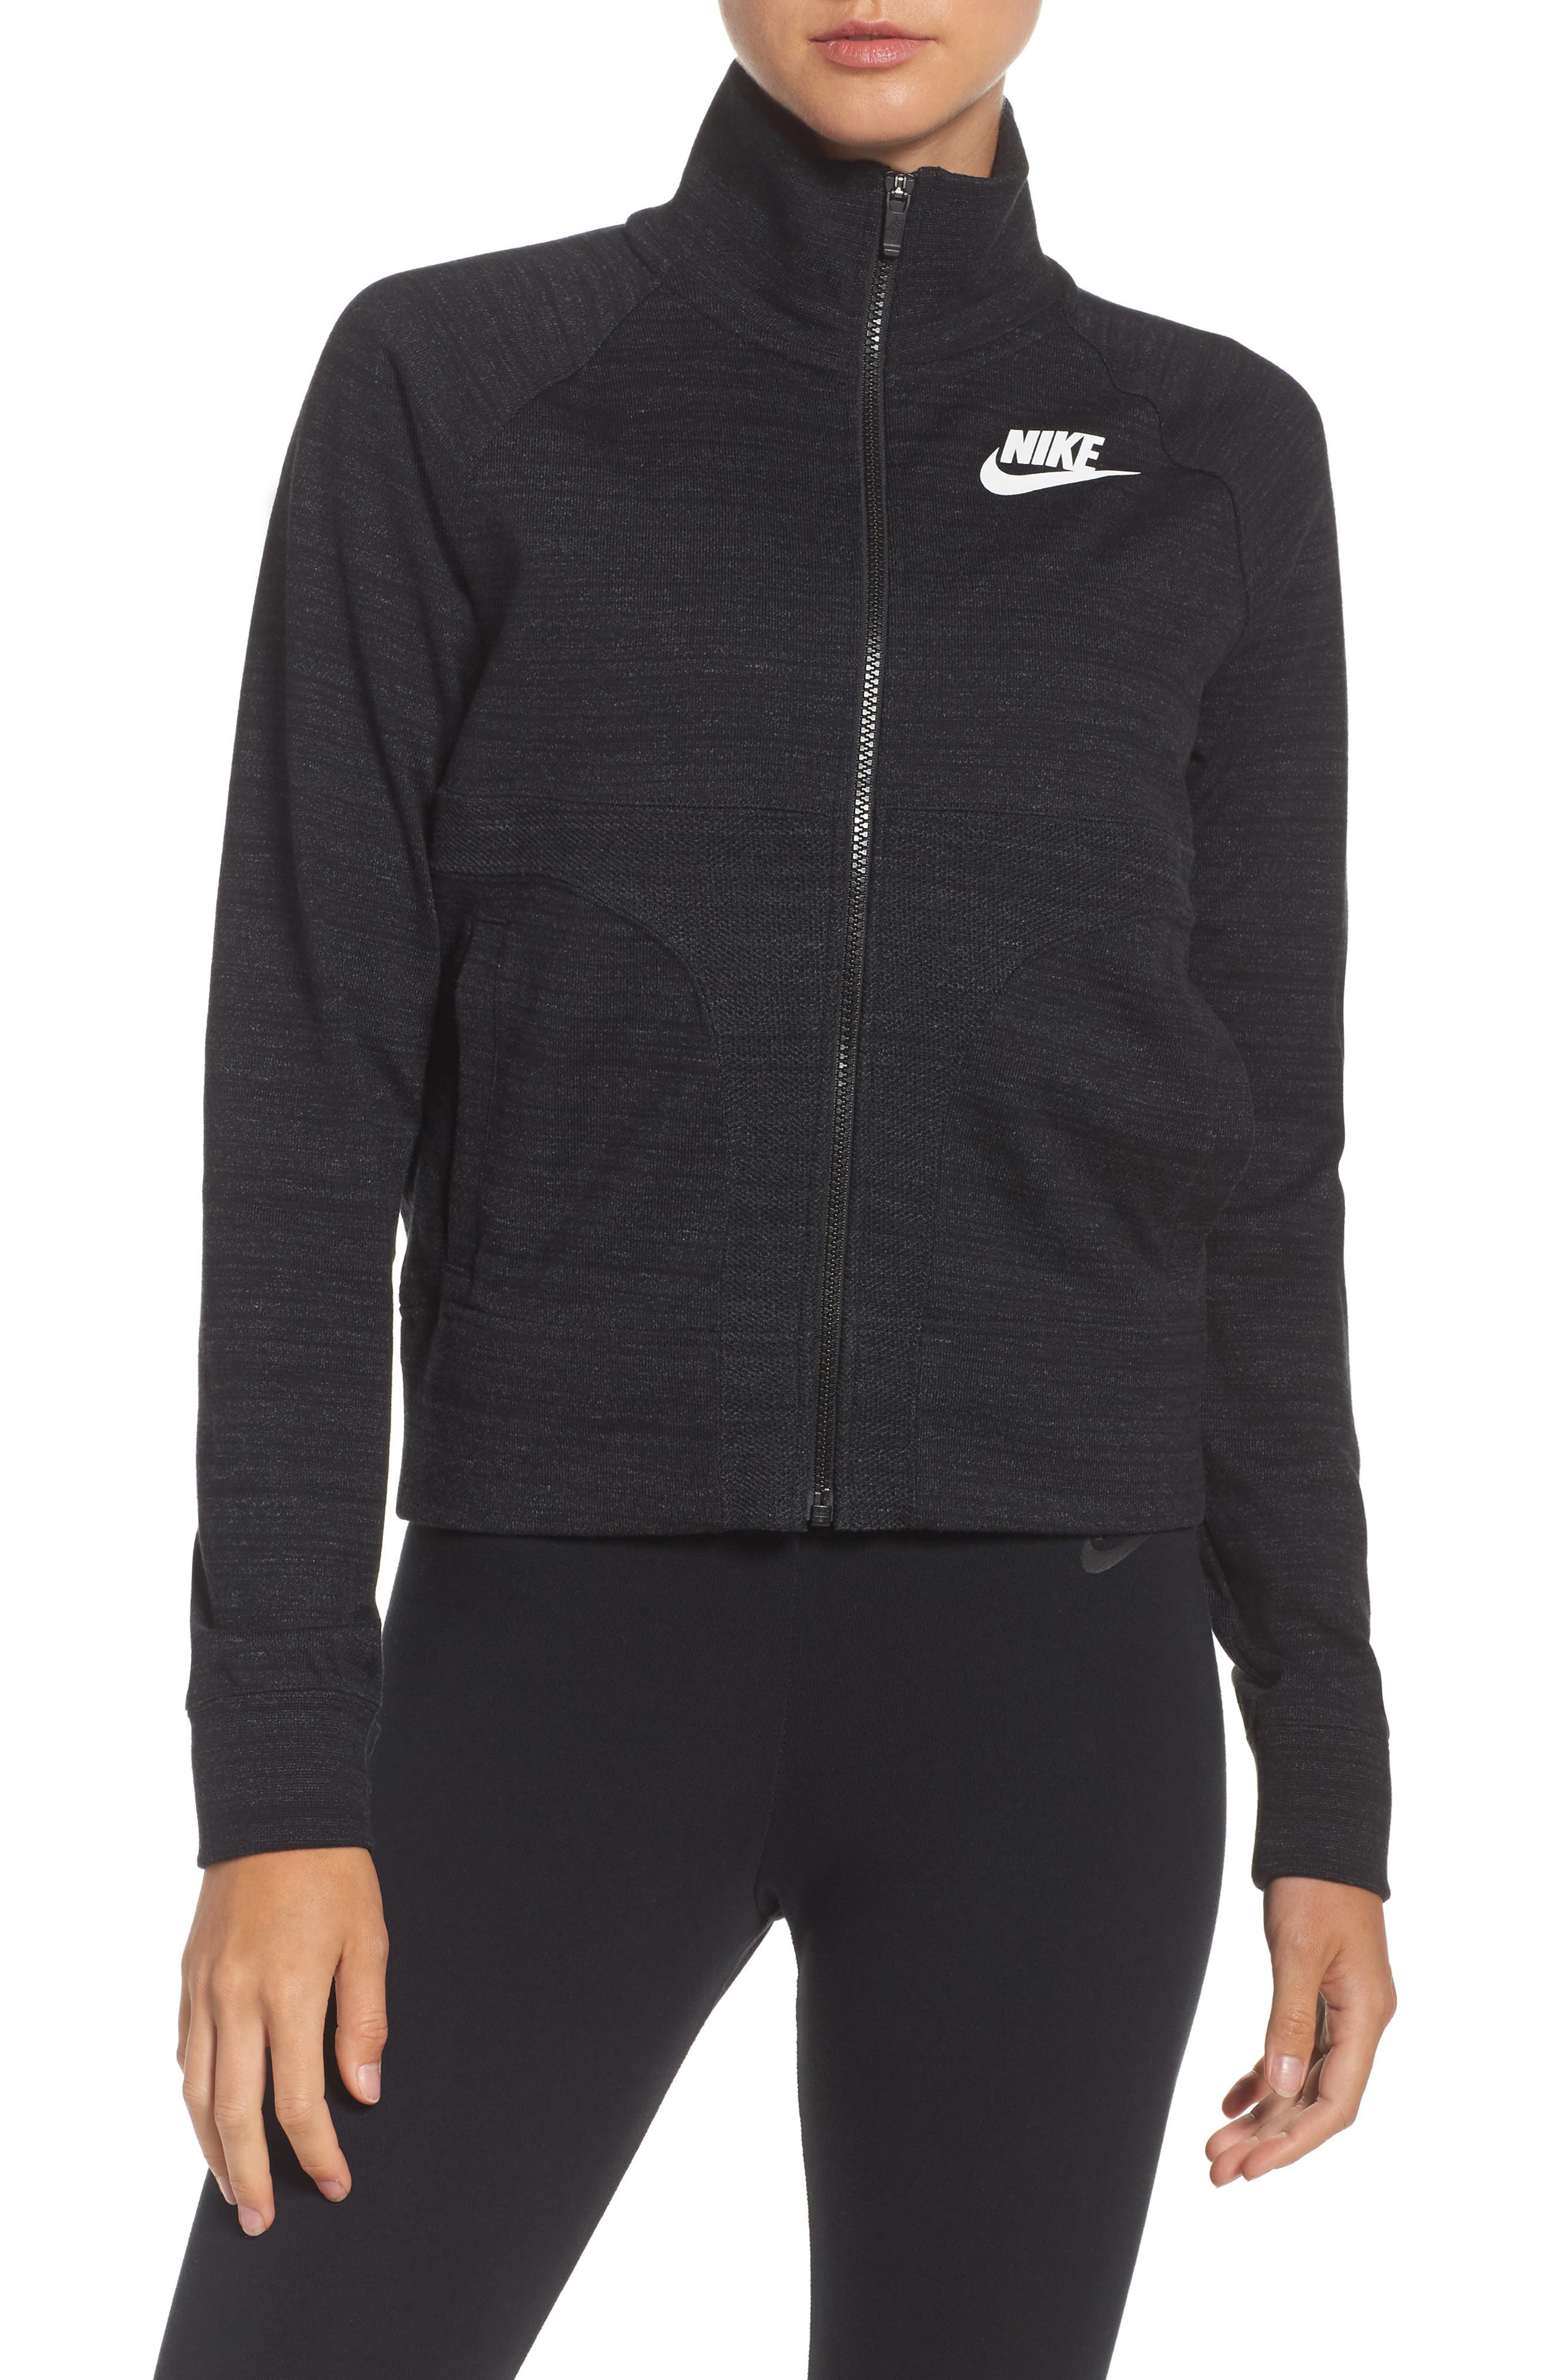 Nike Sportswear Advance 15 Track Jacket